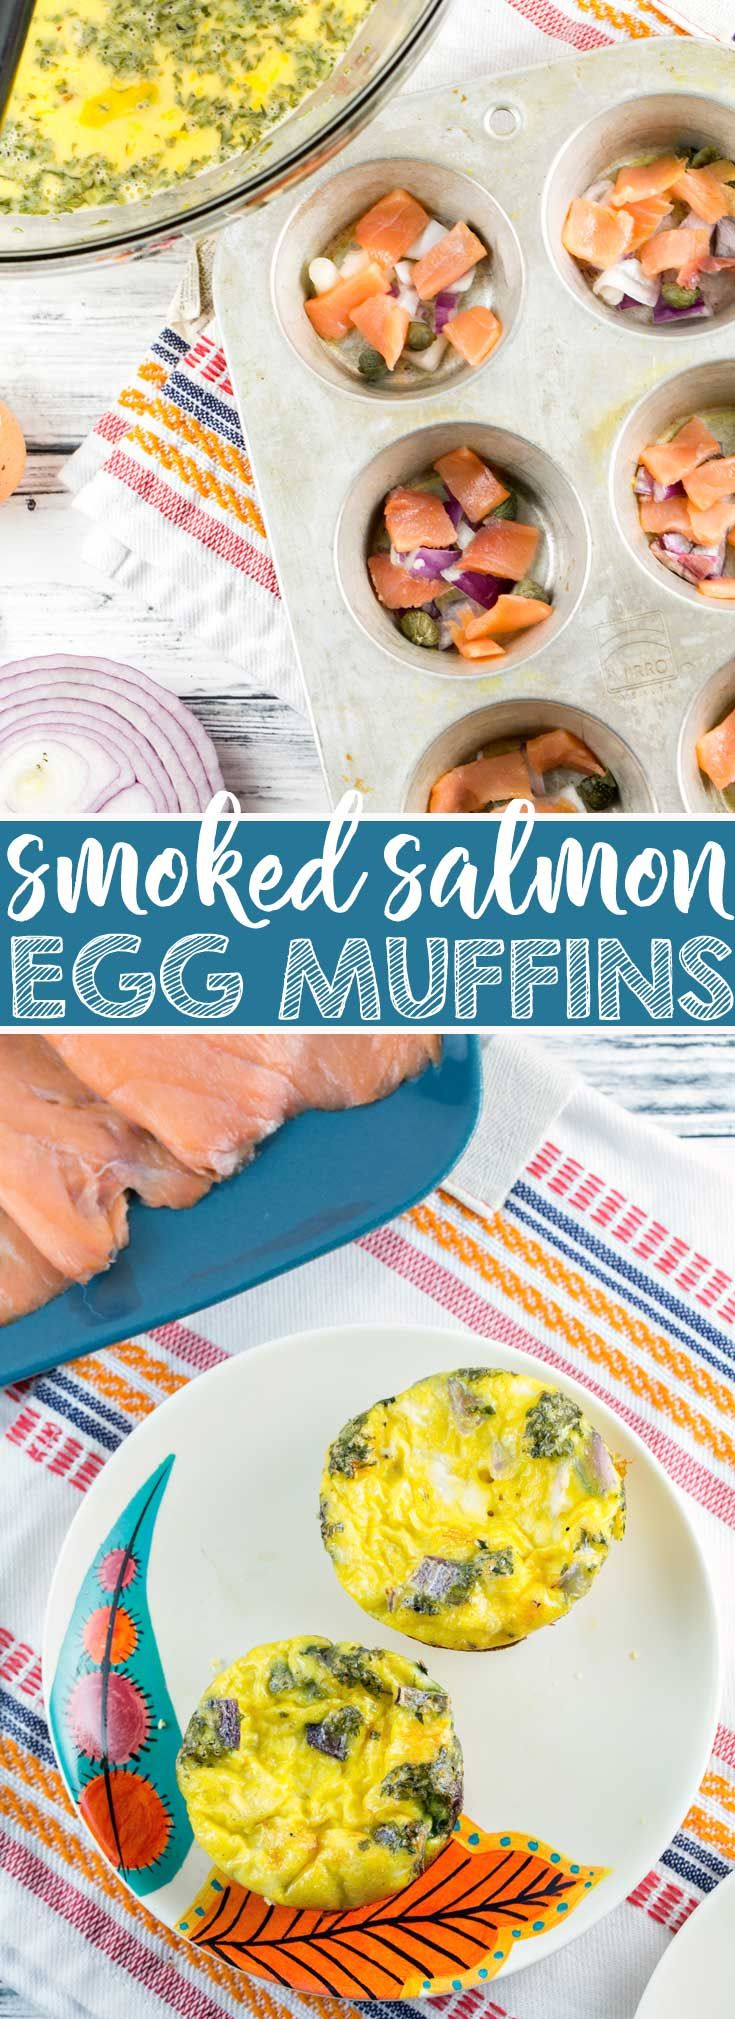 Smoked Salmon Egg Muffins: full of smoked salmon, capers, and red onion, these smoked salmon egg muffins are a delicious low carb, high protein breakfast option. {Bunsen Burner Bakery} #breakfast #brunch #eggs #smokedsalmon #glutenfree  via @bnsnbrnrbakery